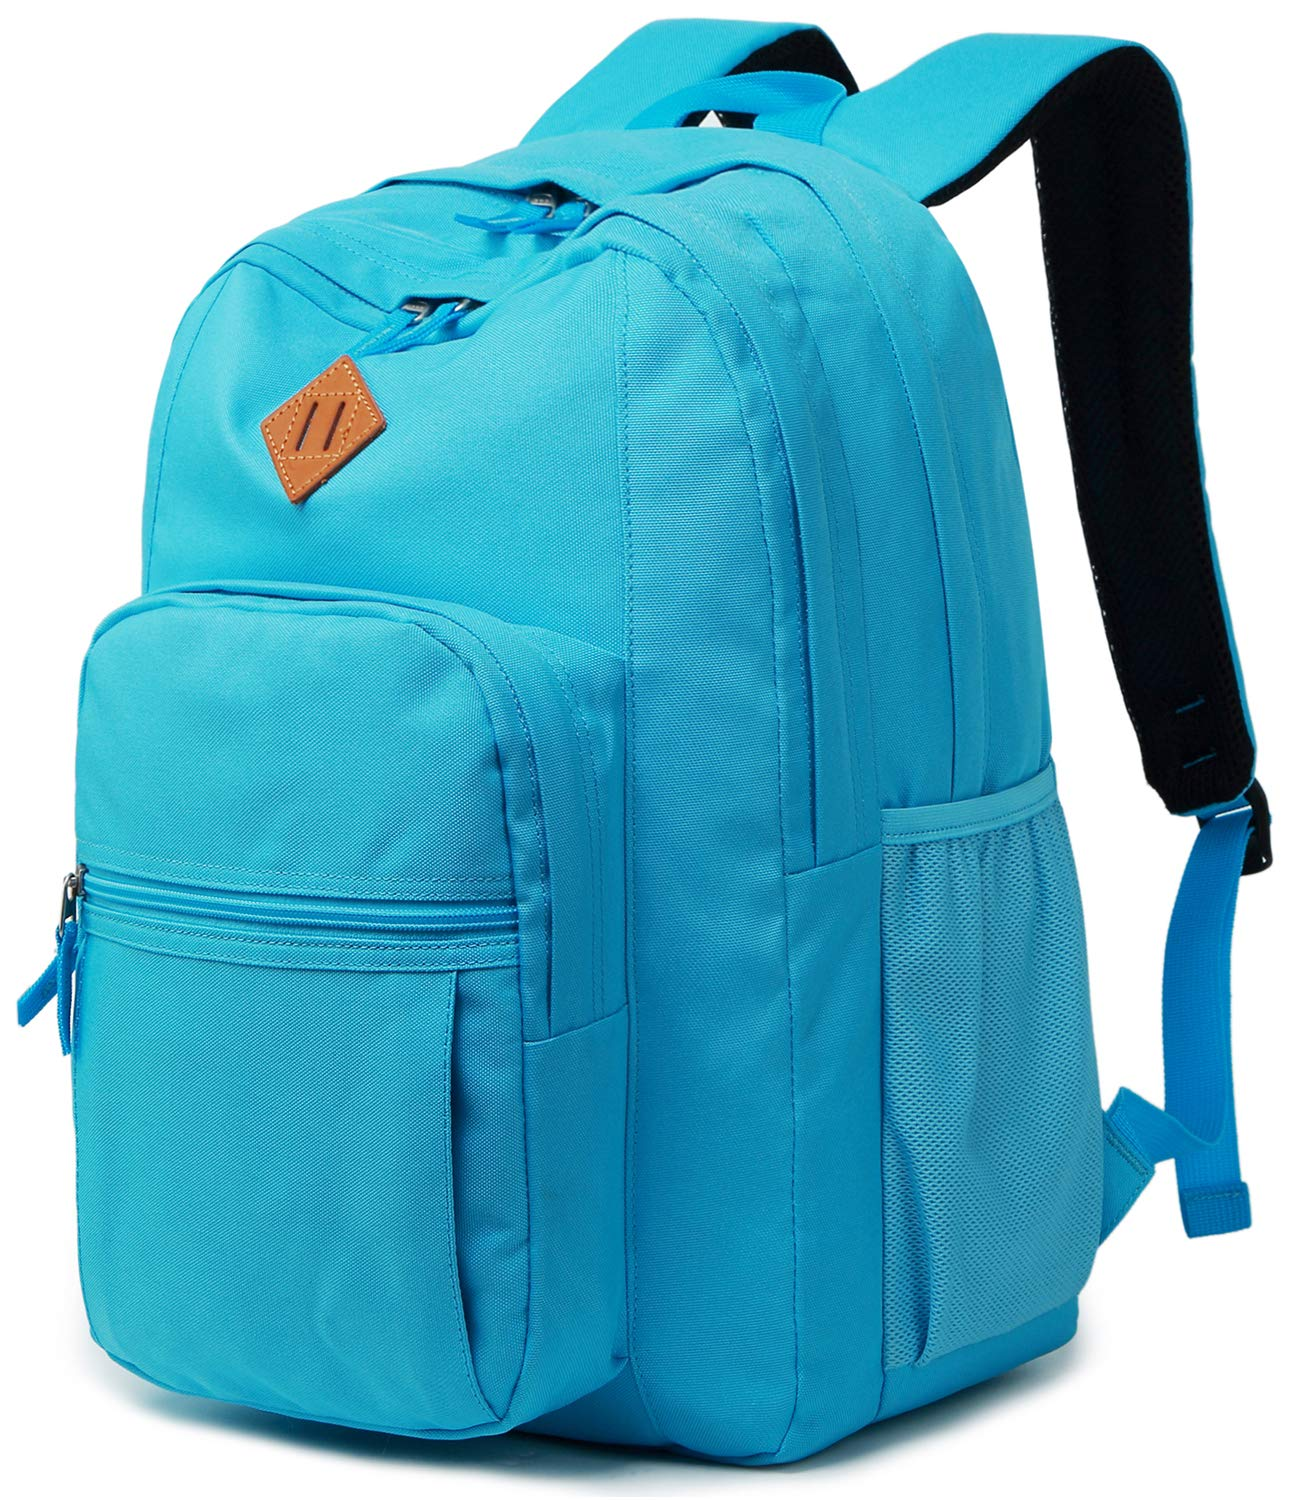 7b3c81a432a8 Abshoo Classical Basic Womens Travel Backpack For College Men Water  Resistant Bookbag (PowDerBlue)